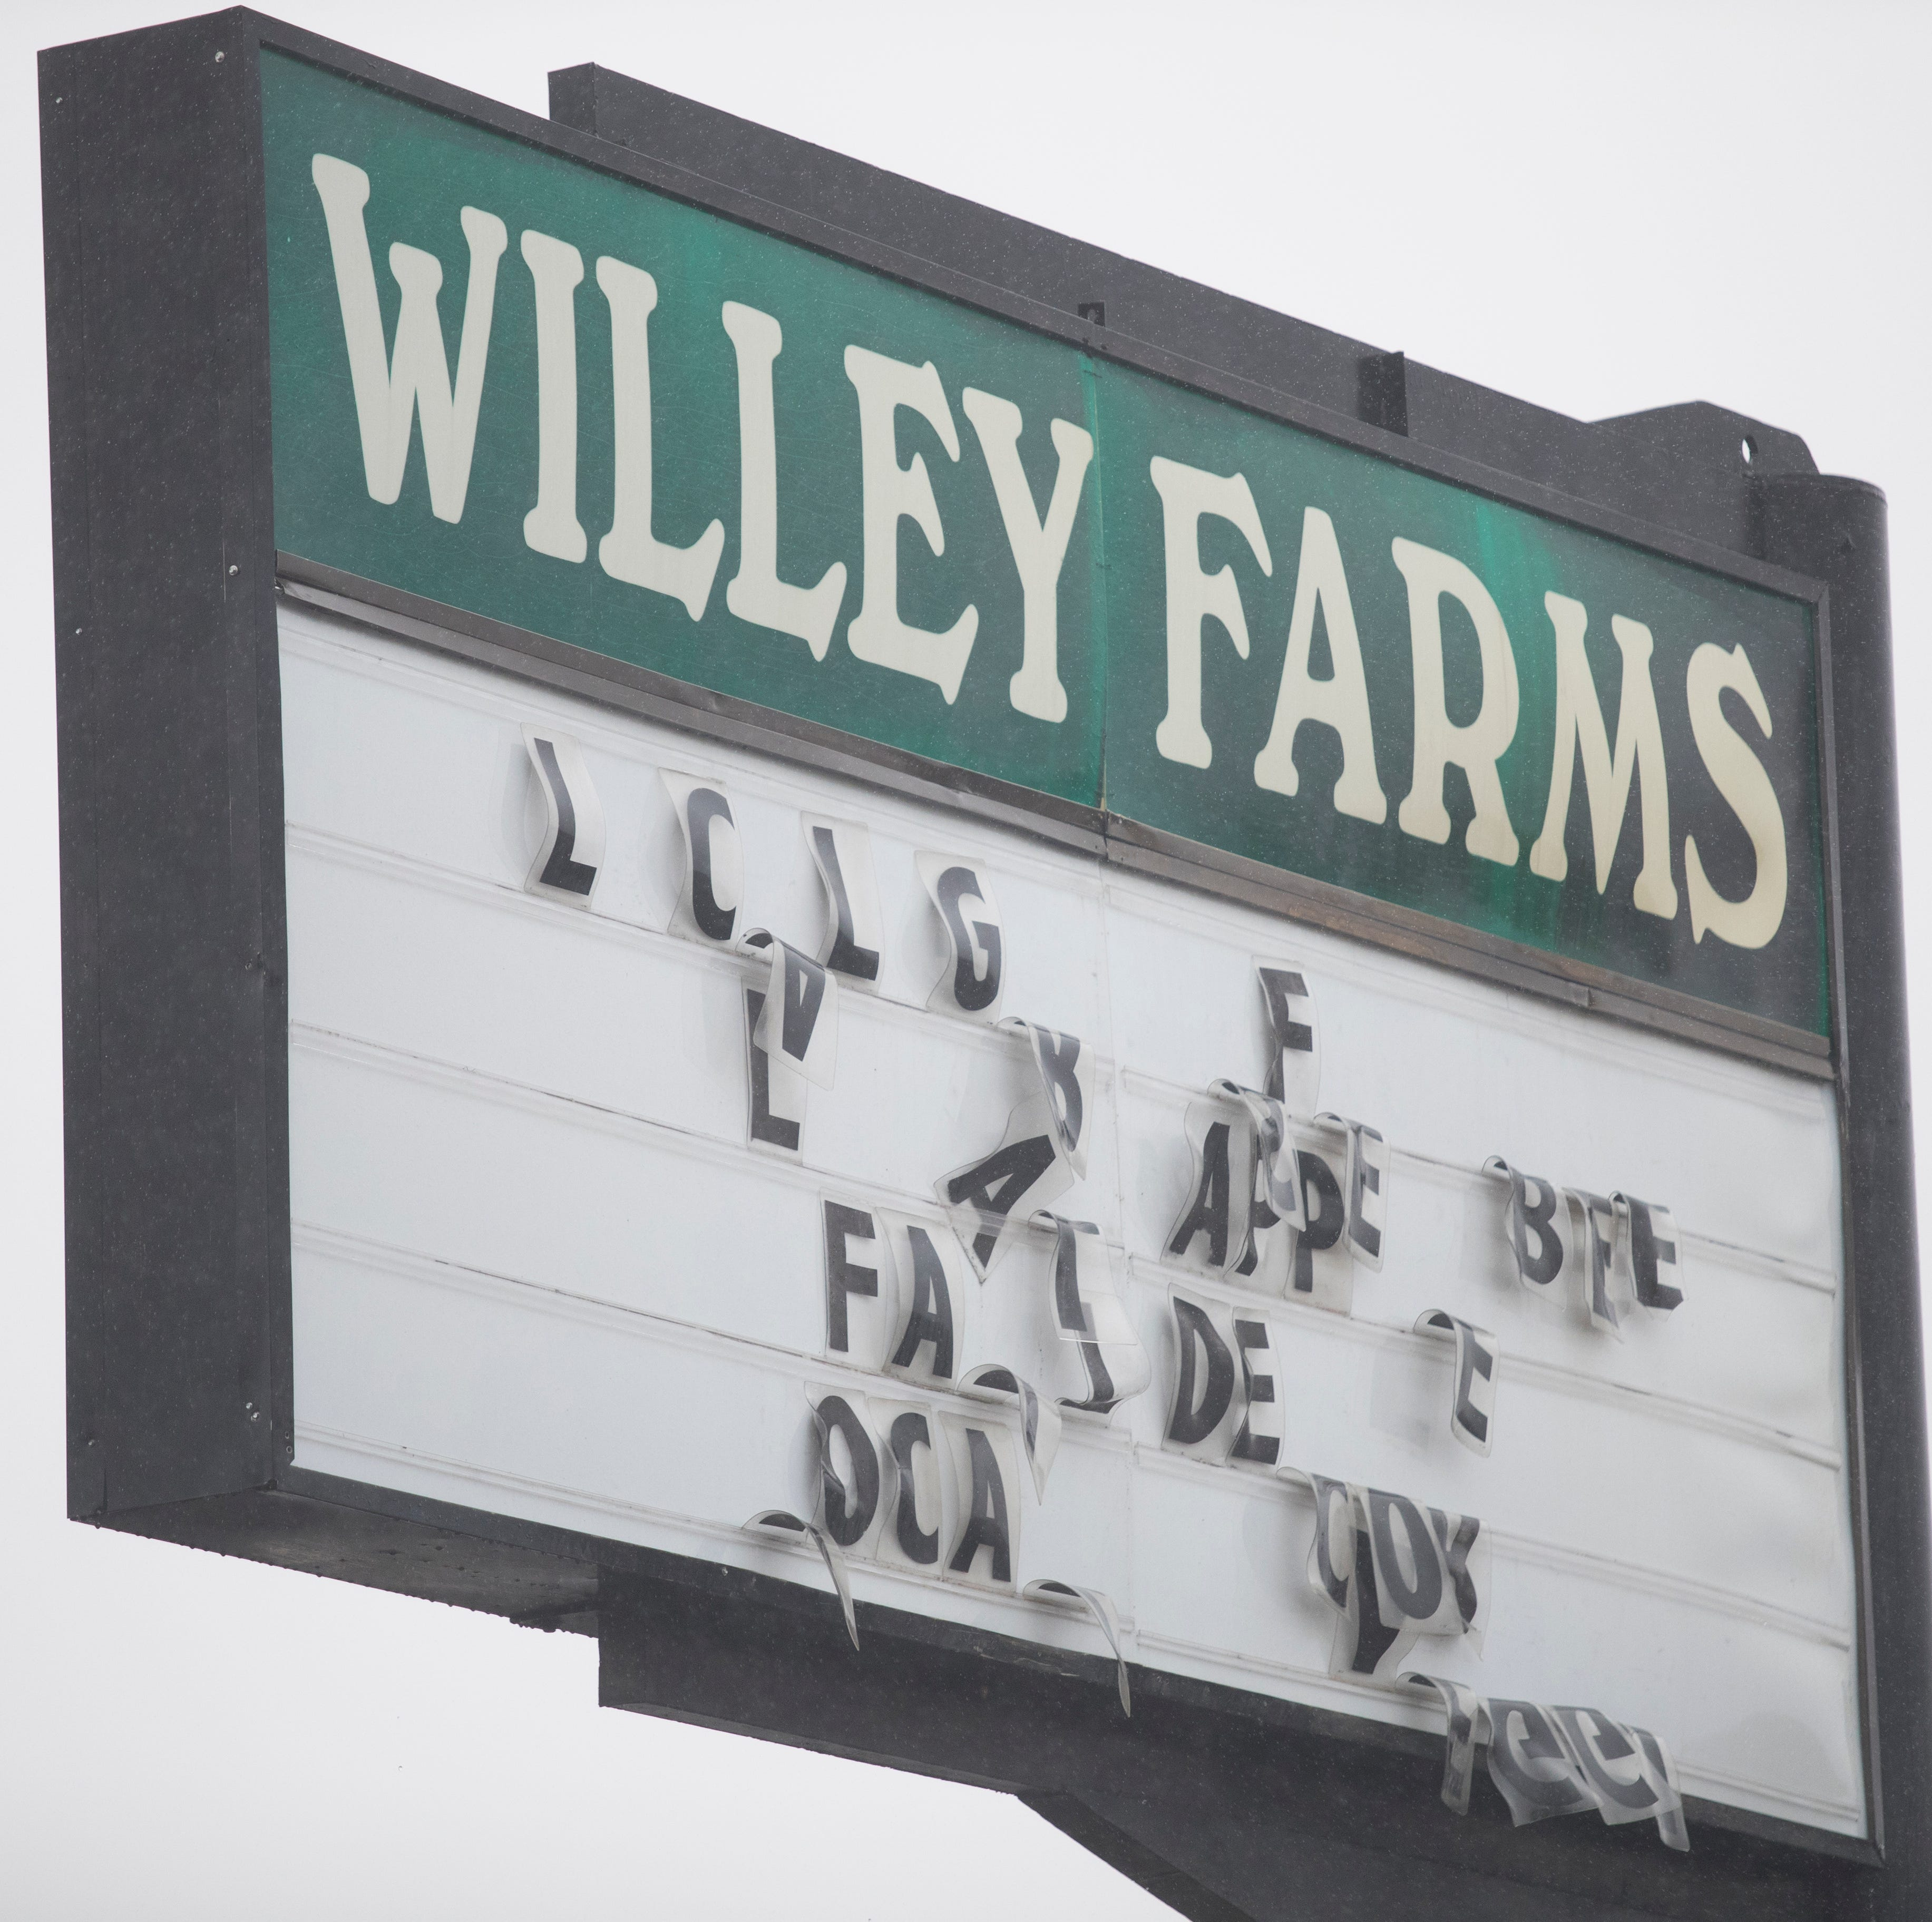 WDEL's Rick Jensen apologizes for insensitive tweet about Willey Farms fire